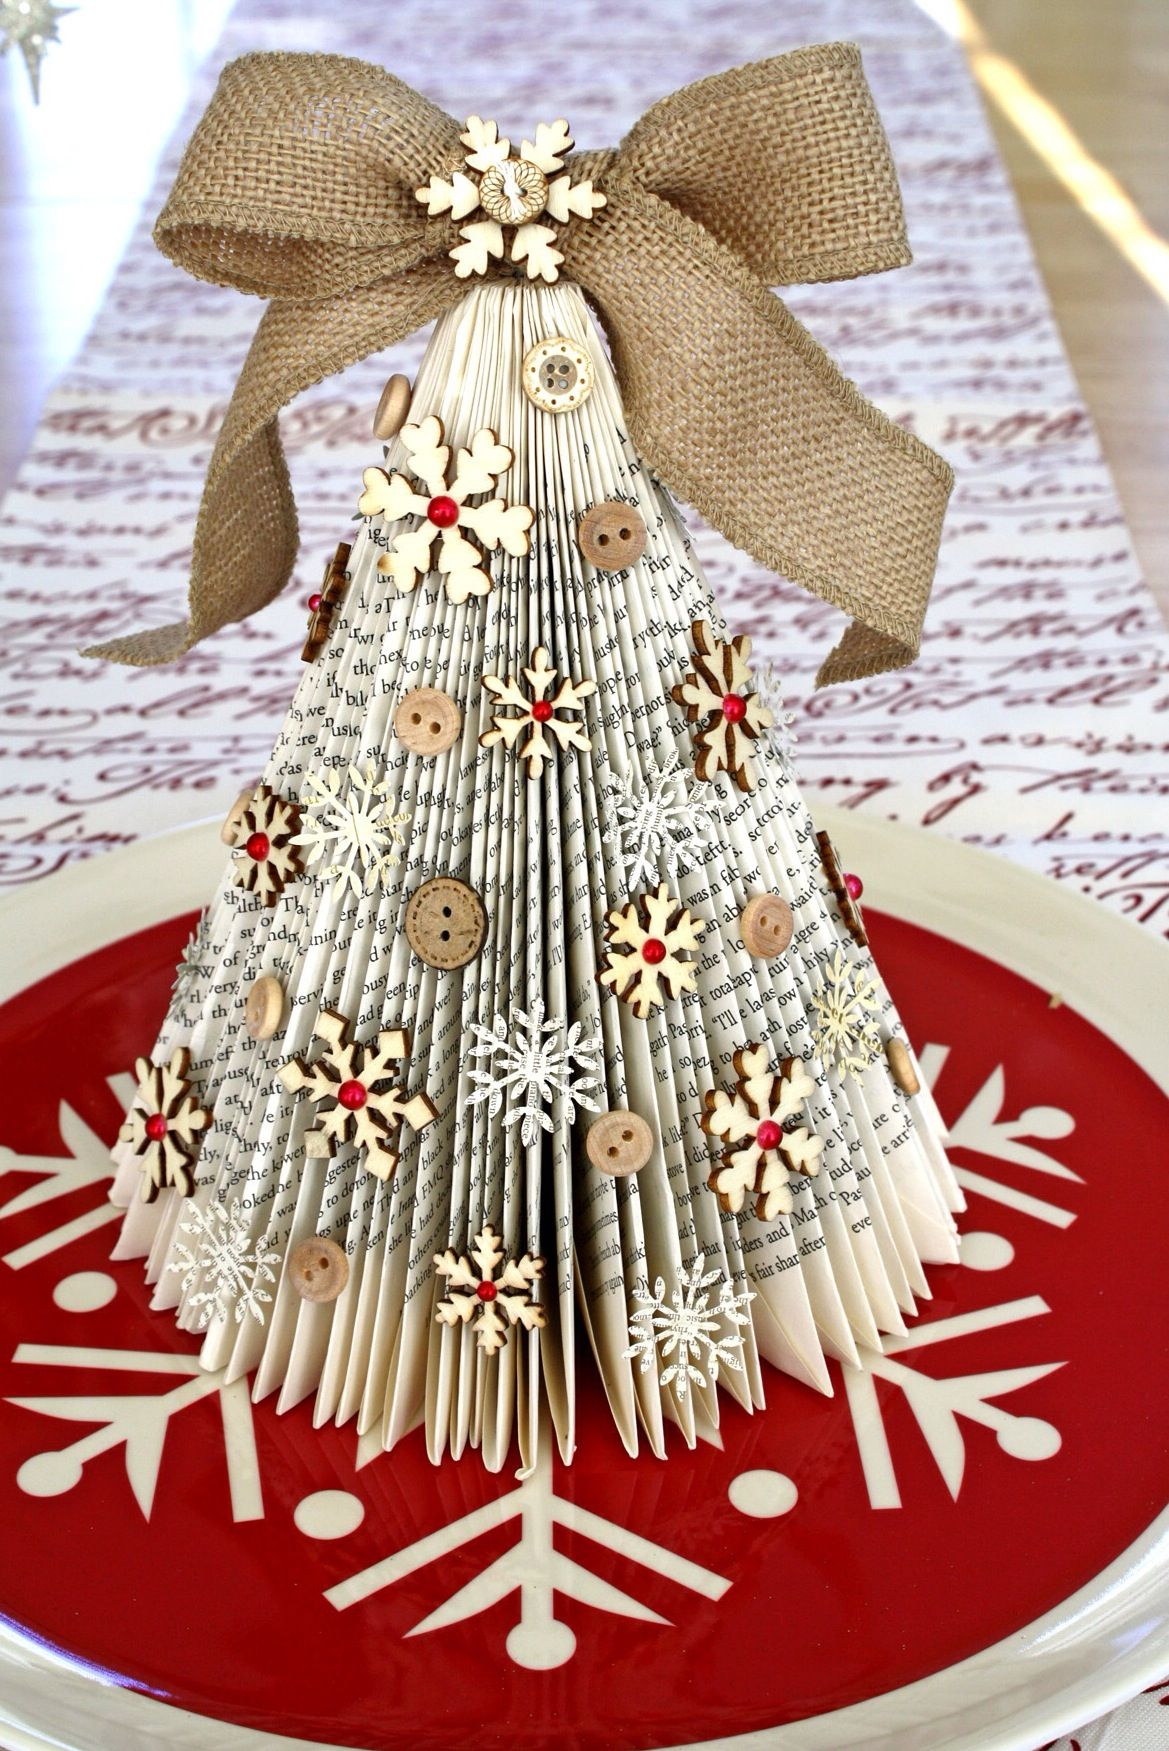 Christmas Crafts And Decorations Book Themed Ideas A Book Long Enough Activite Manuelle Noel Deco Noel Noel